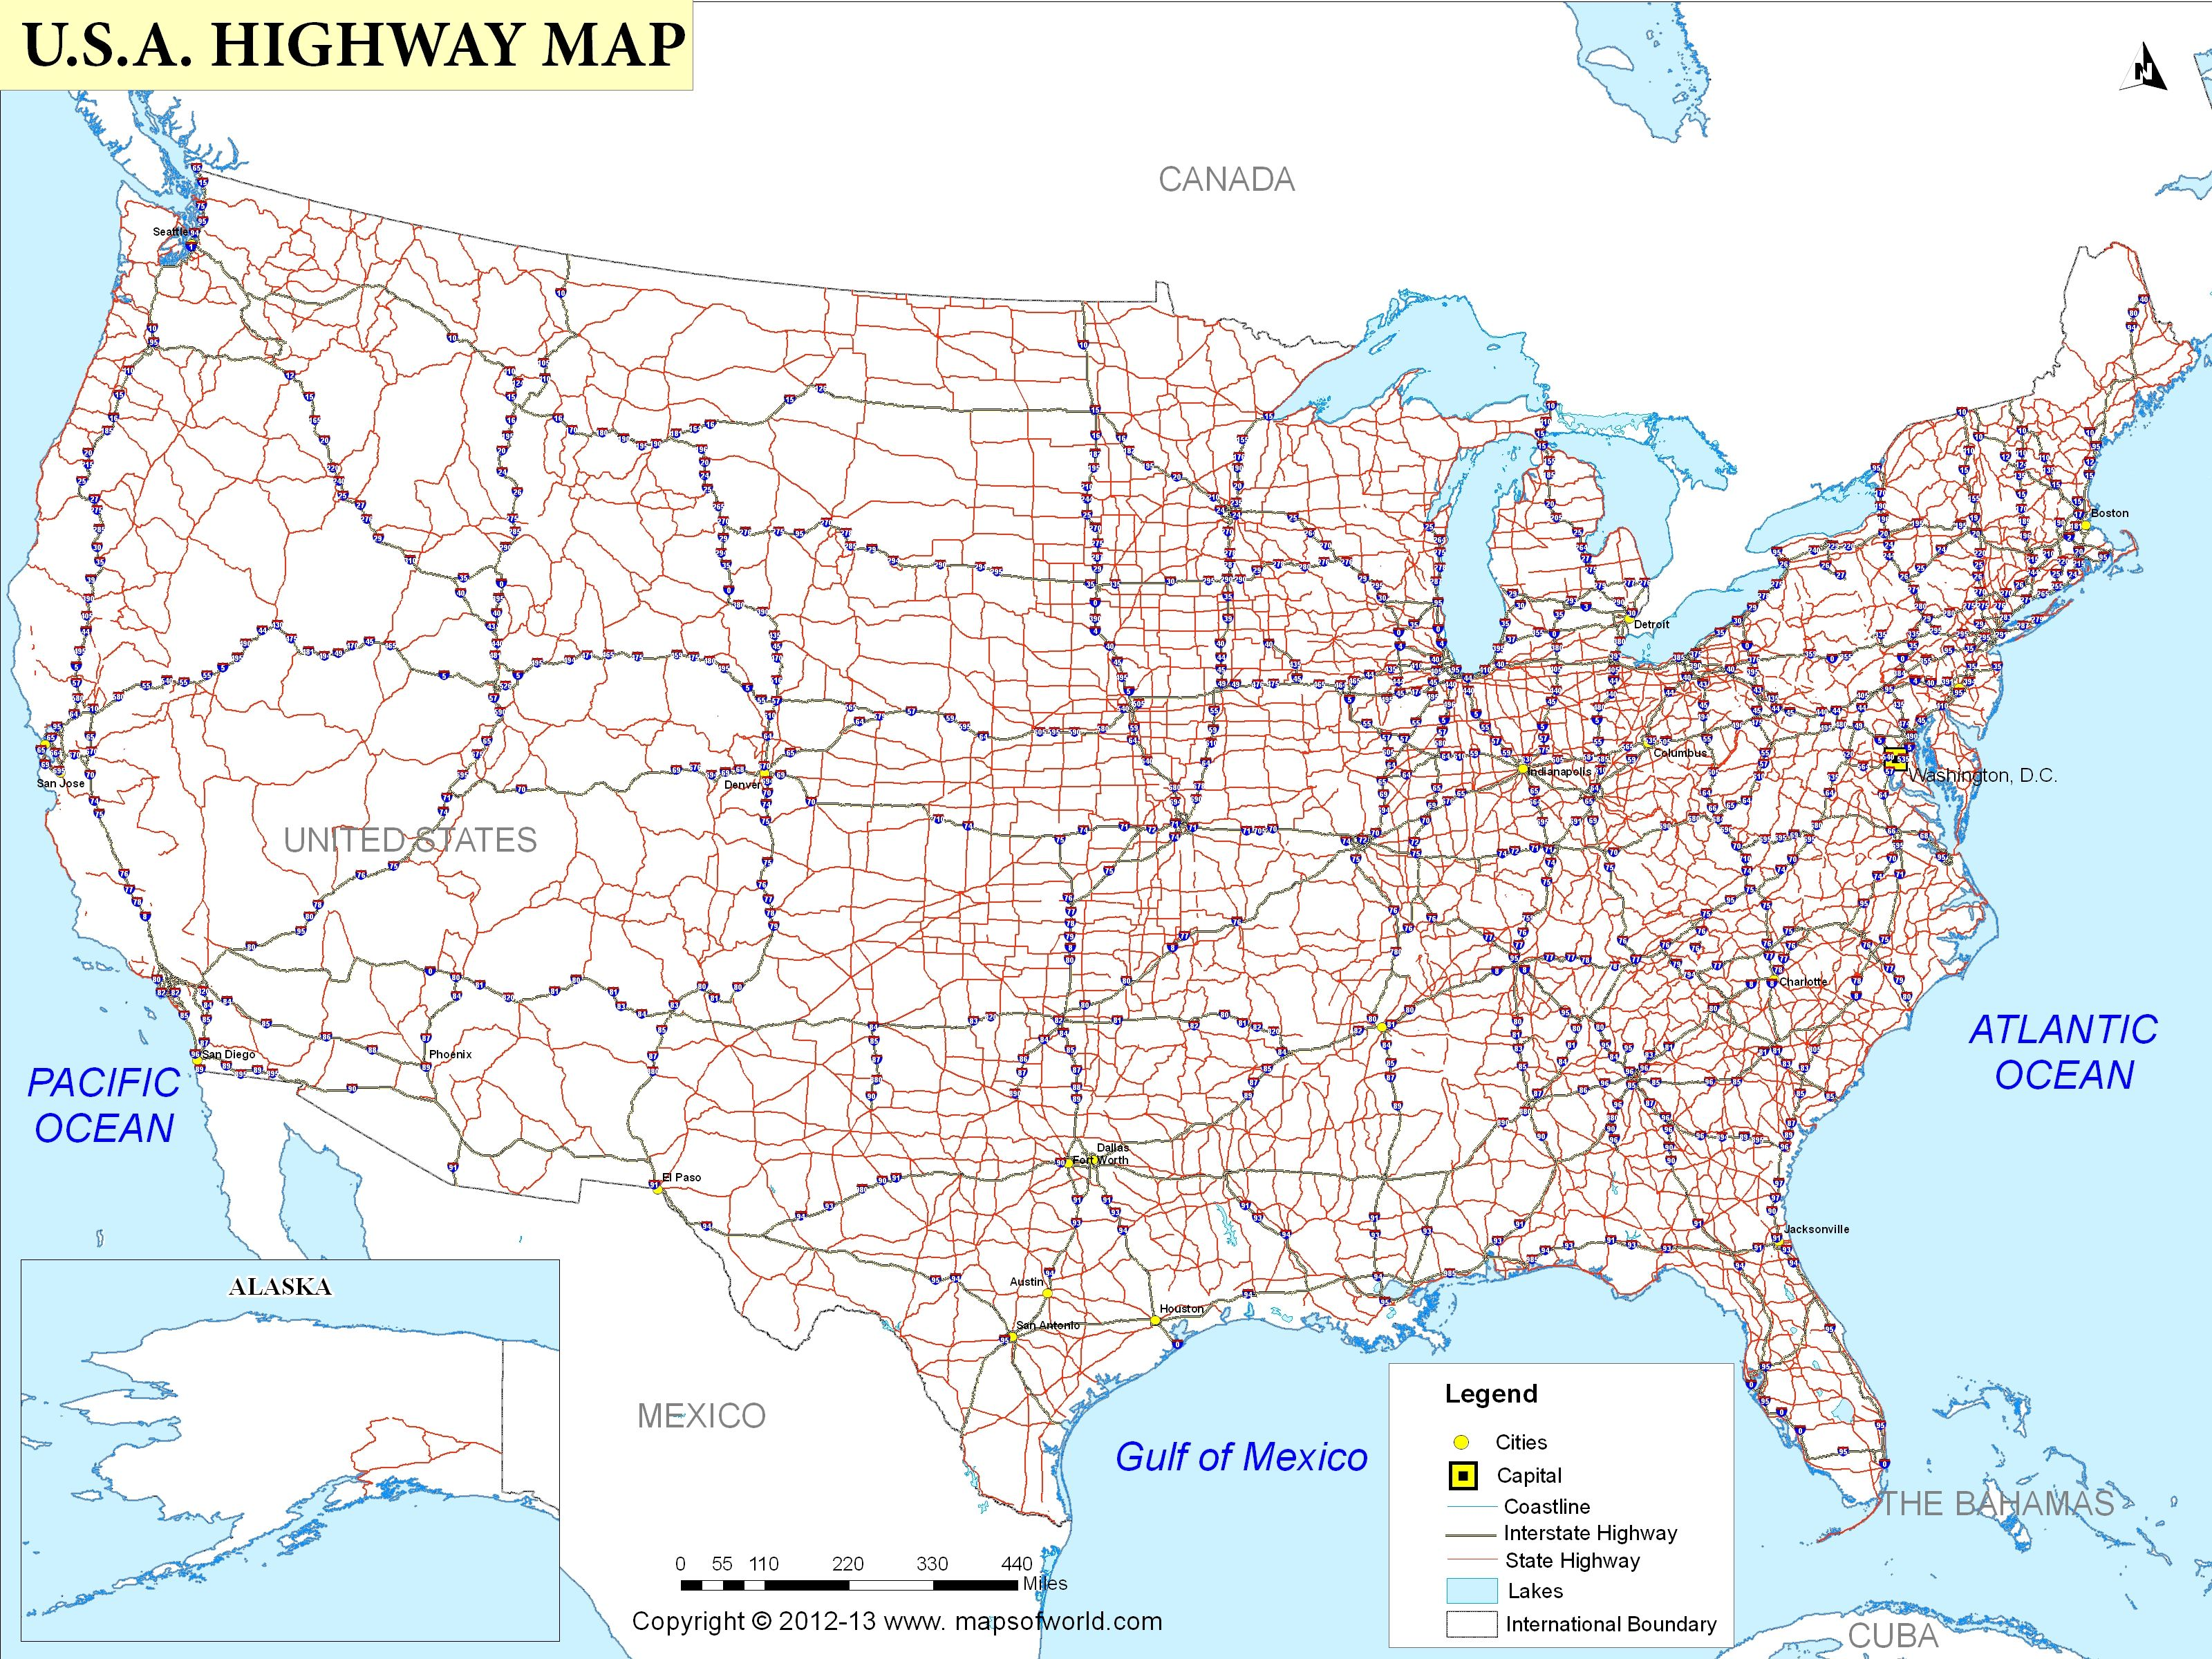 Printable Us Map With Interstate Highways US Highway Map | Usa travel map, Usa map, Highway map